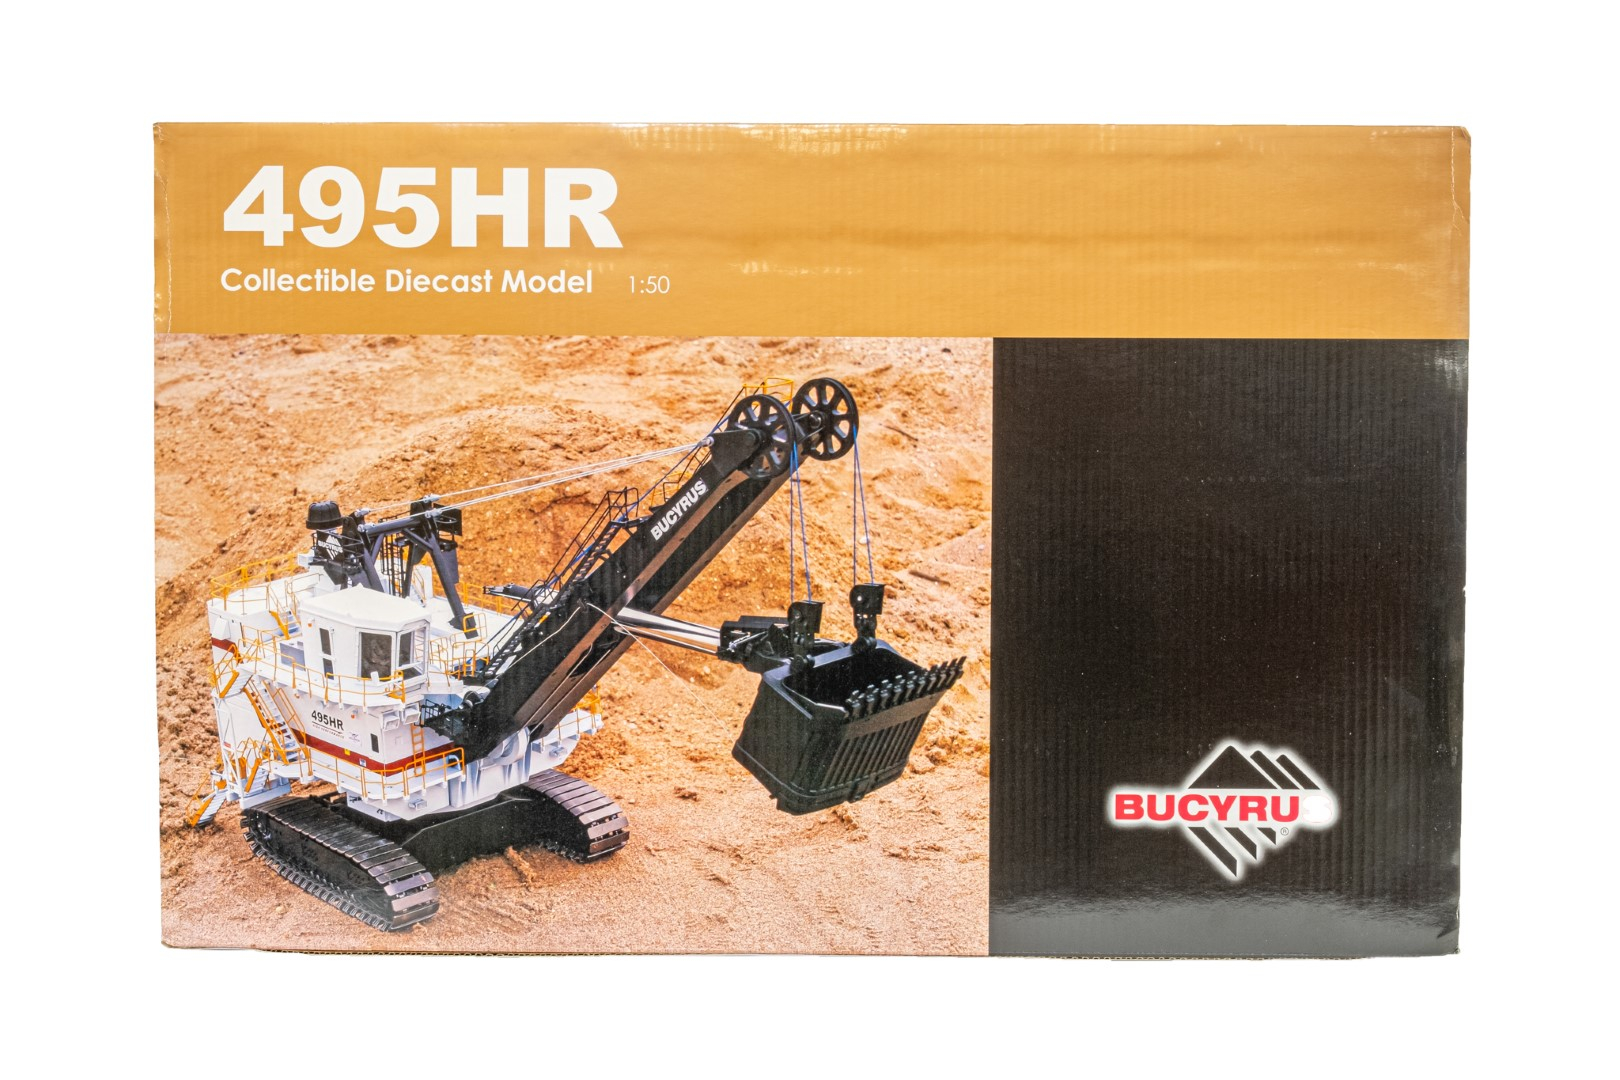 TWH Bucyrus 495HR Electric Mining Shovel - - Image 3 of 3